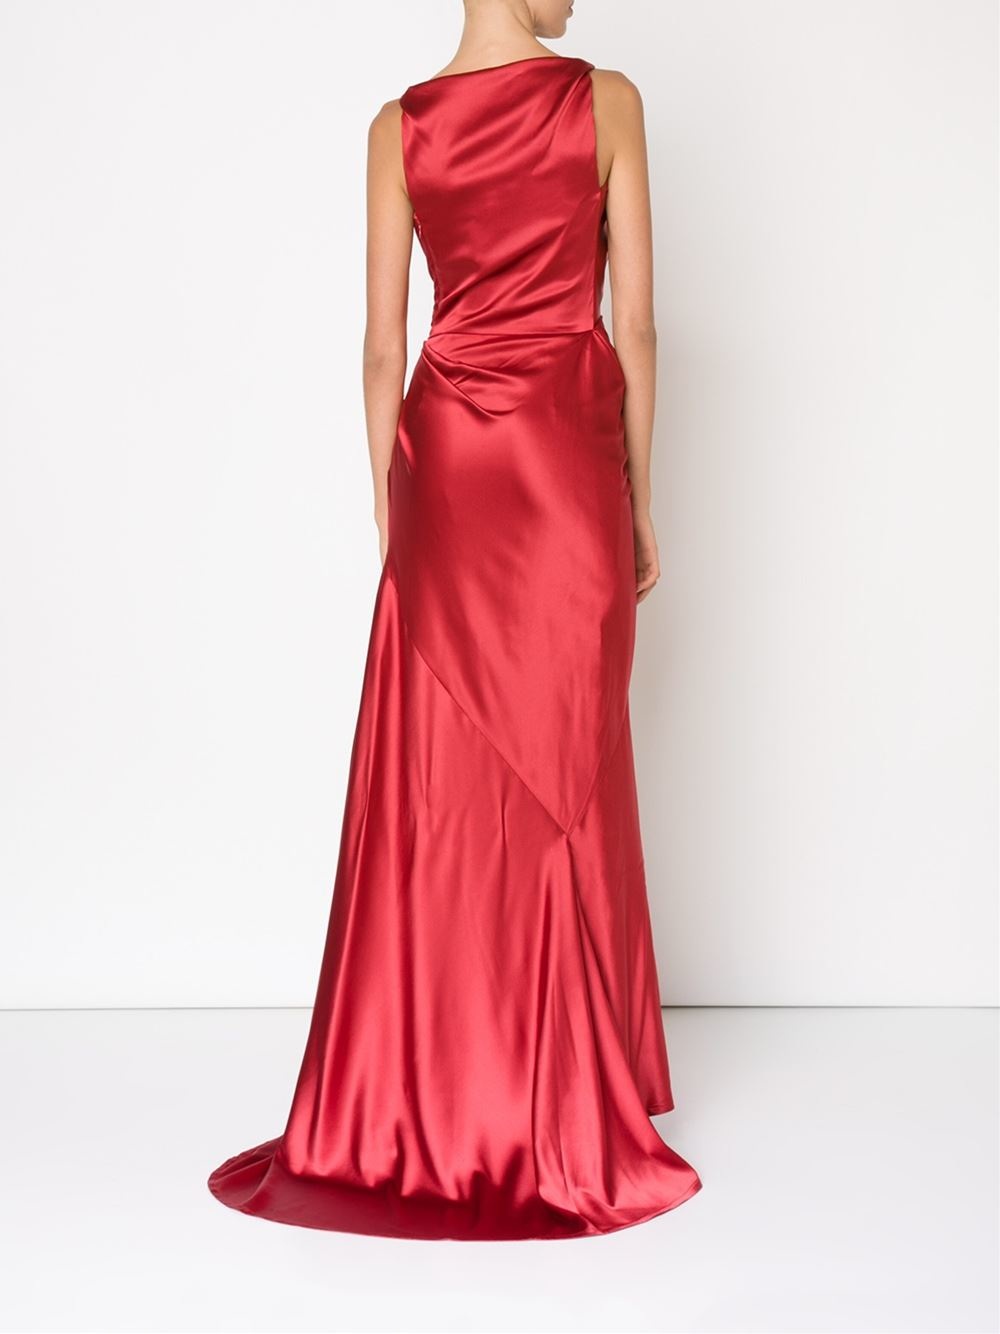 Vivienne Westwood Red Label Draped Evening Dress In Red Lyst